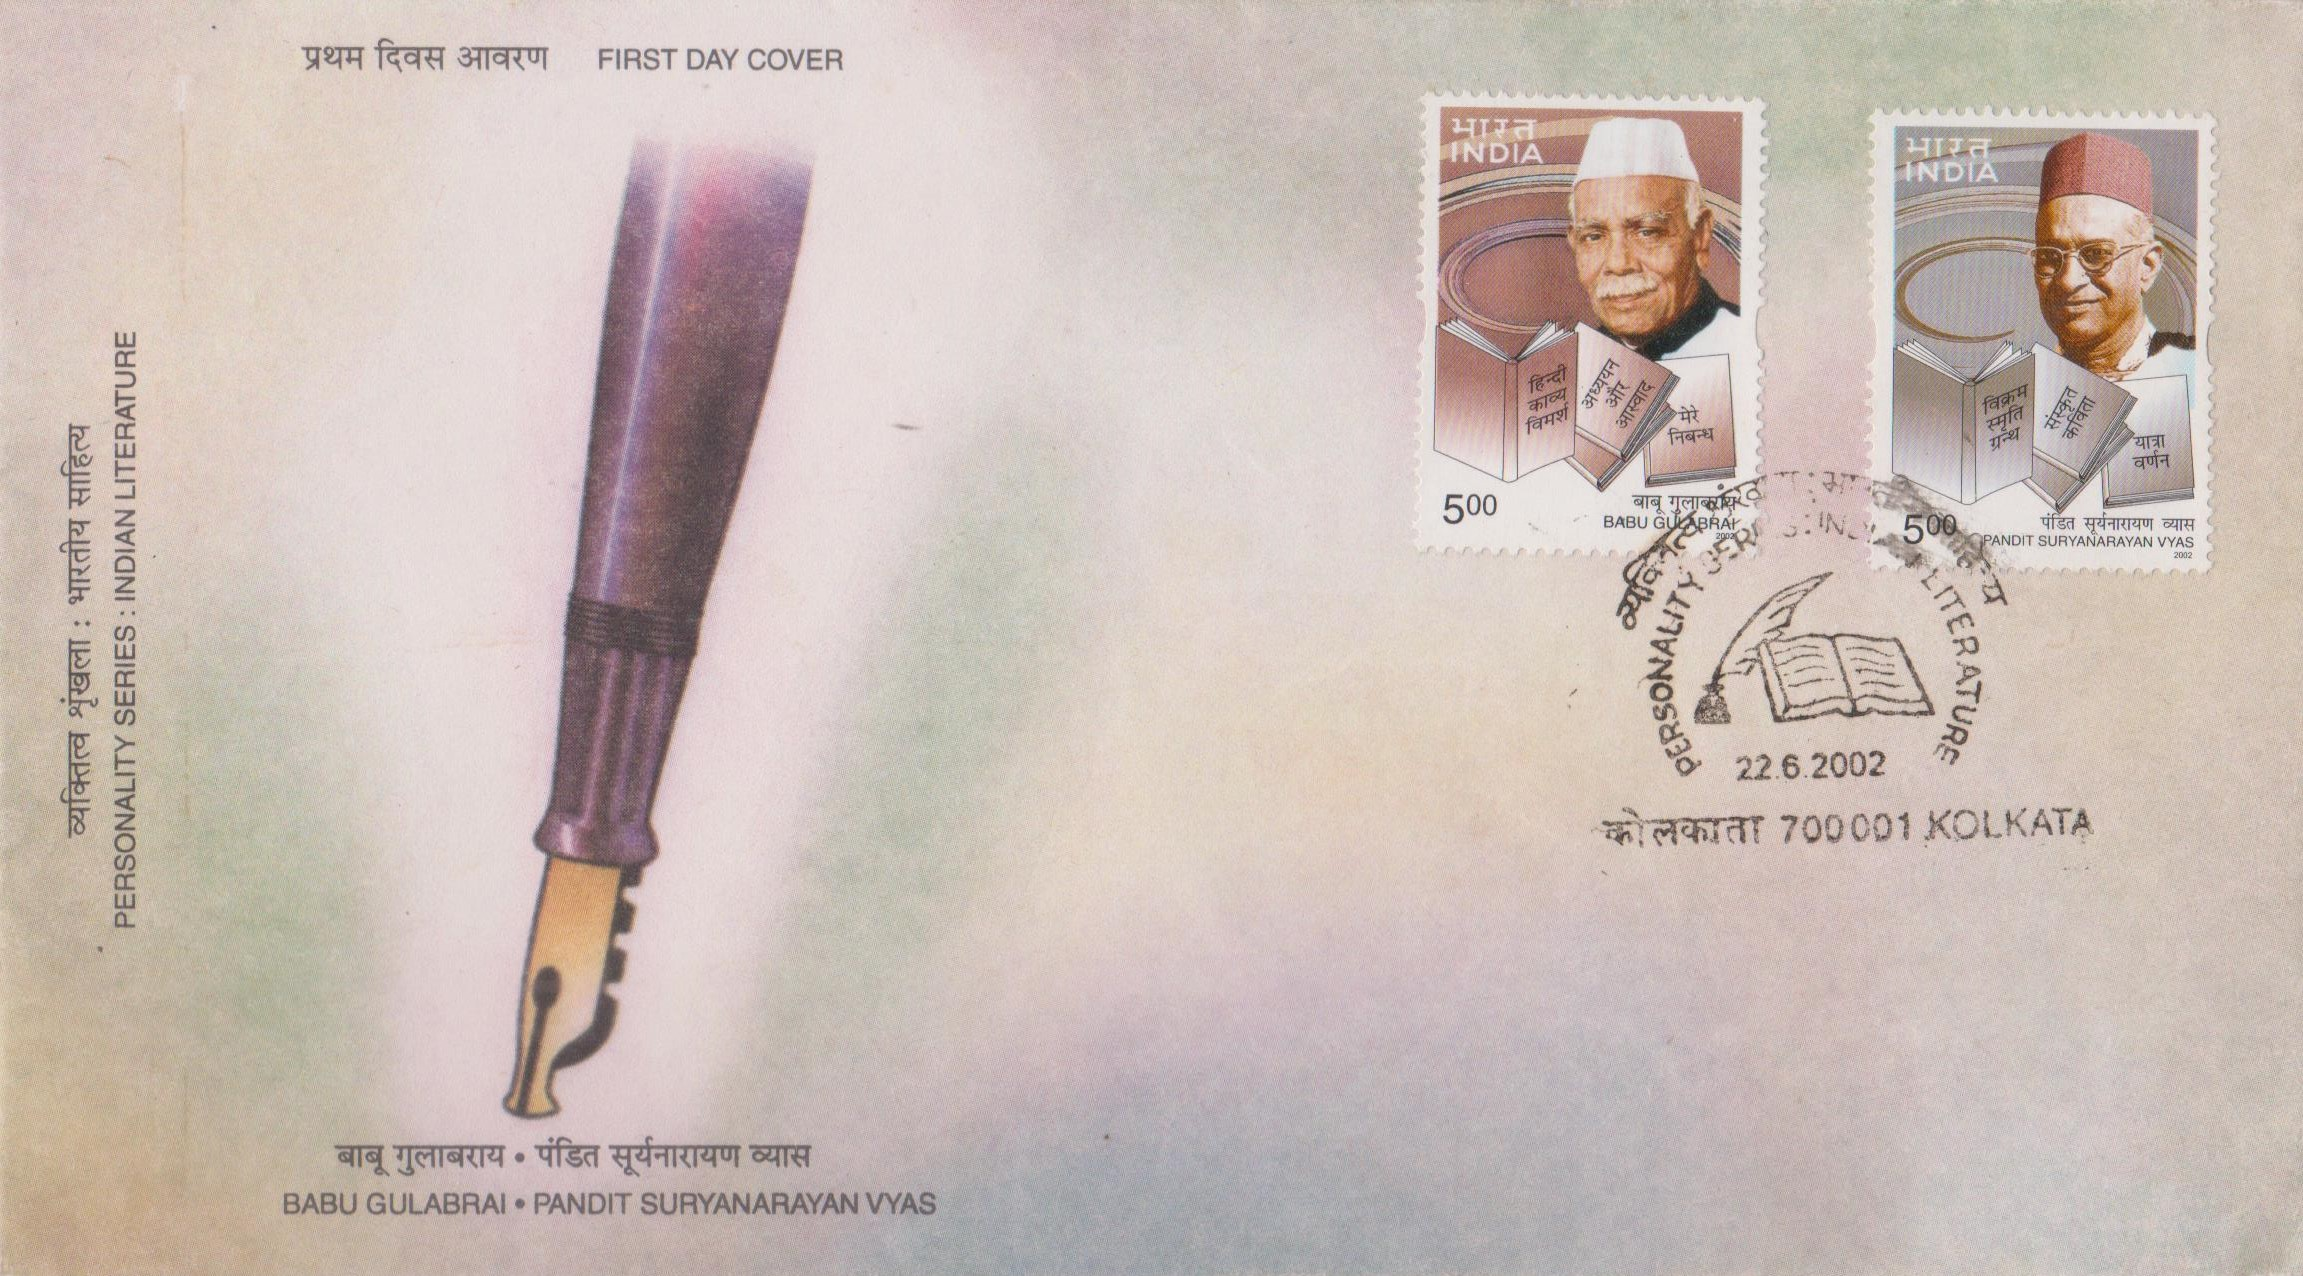 Indian Literature, First Day Cover 2002, Astrology